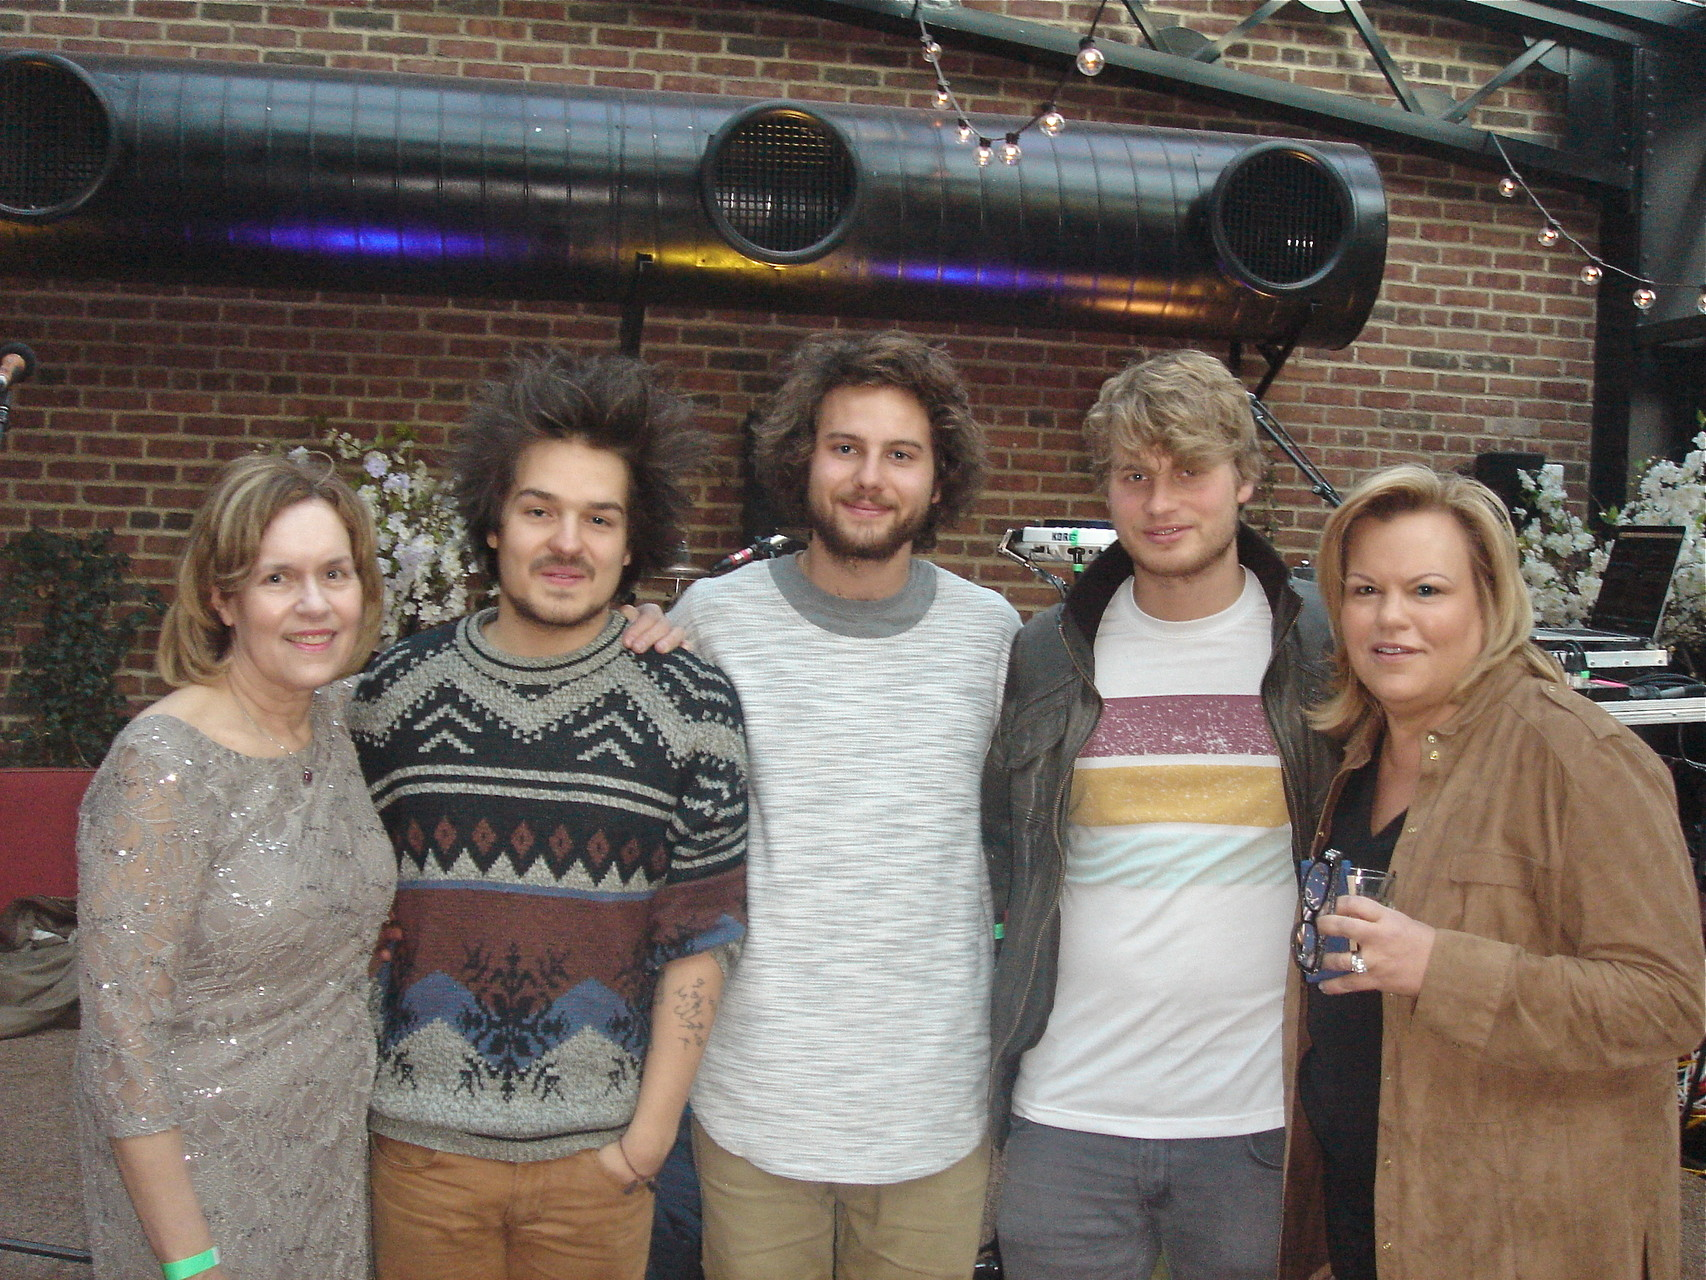 Lorraine & Celeste with Ellie's favorite band, Milky Chance